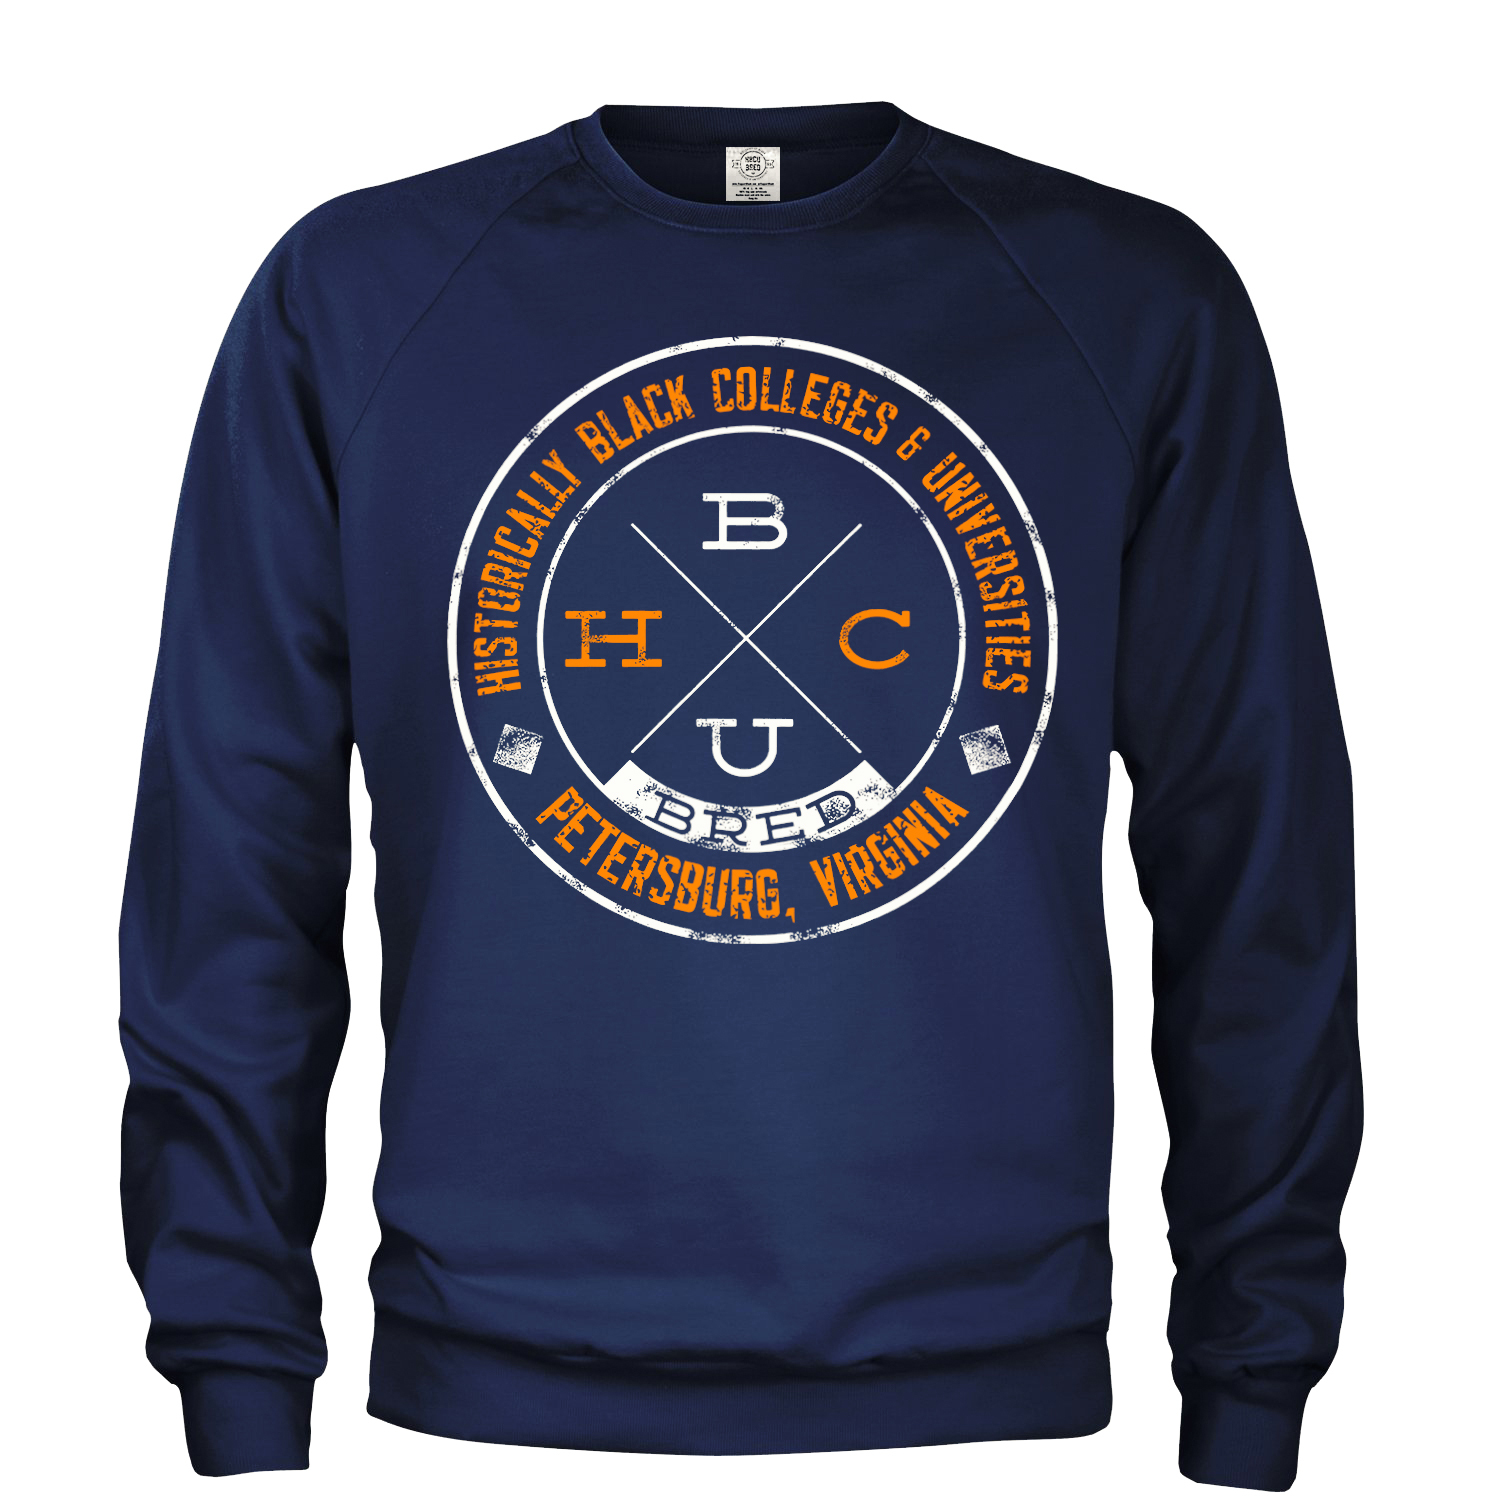 Crew Neck Sweatshirt - Navy Blue w/Orange and white text 000001